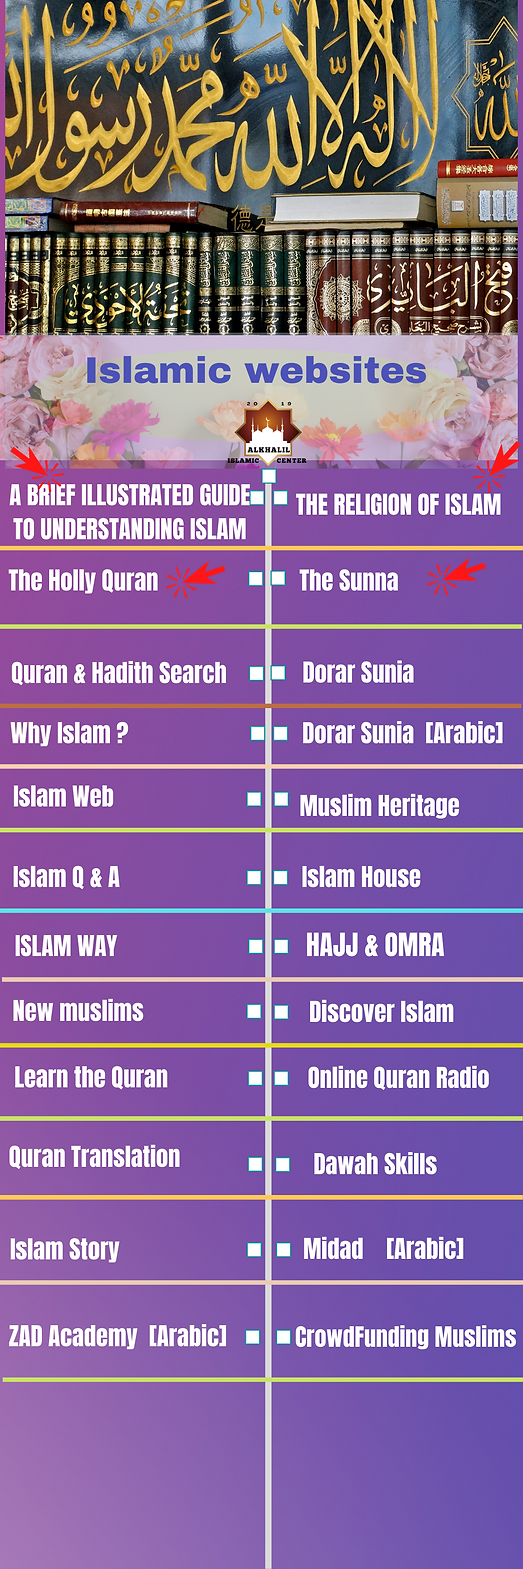 Trusted Islamic websites.png